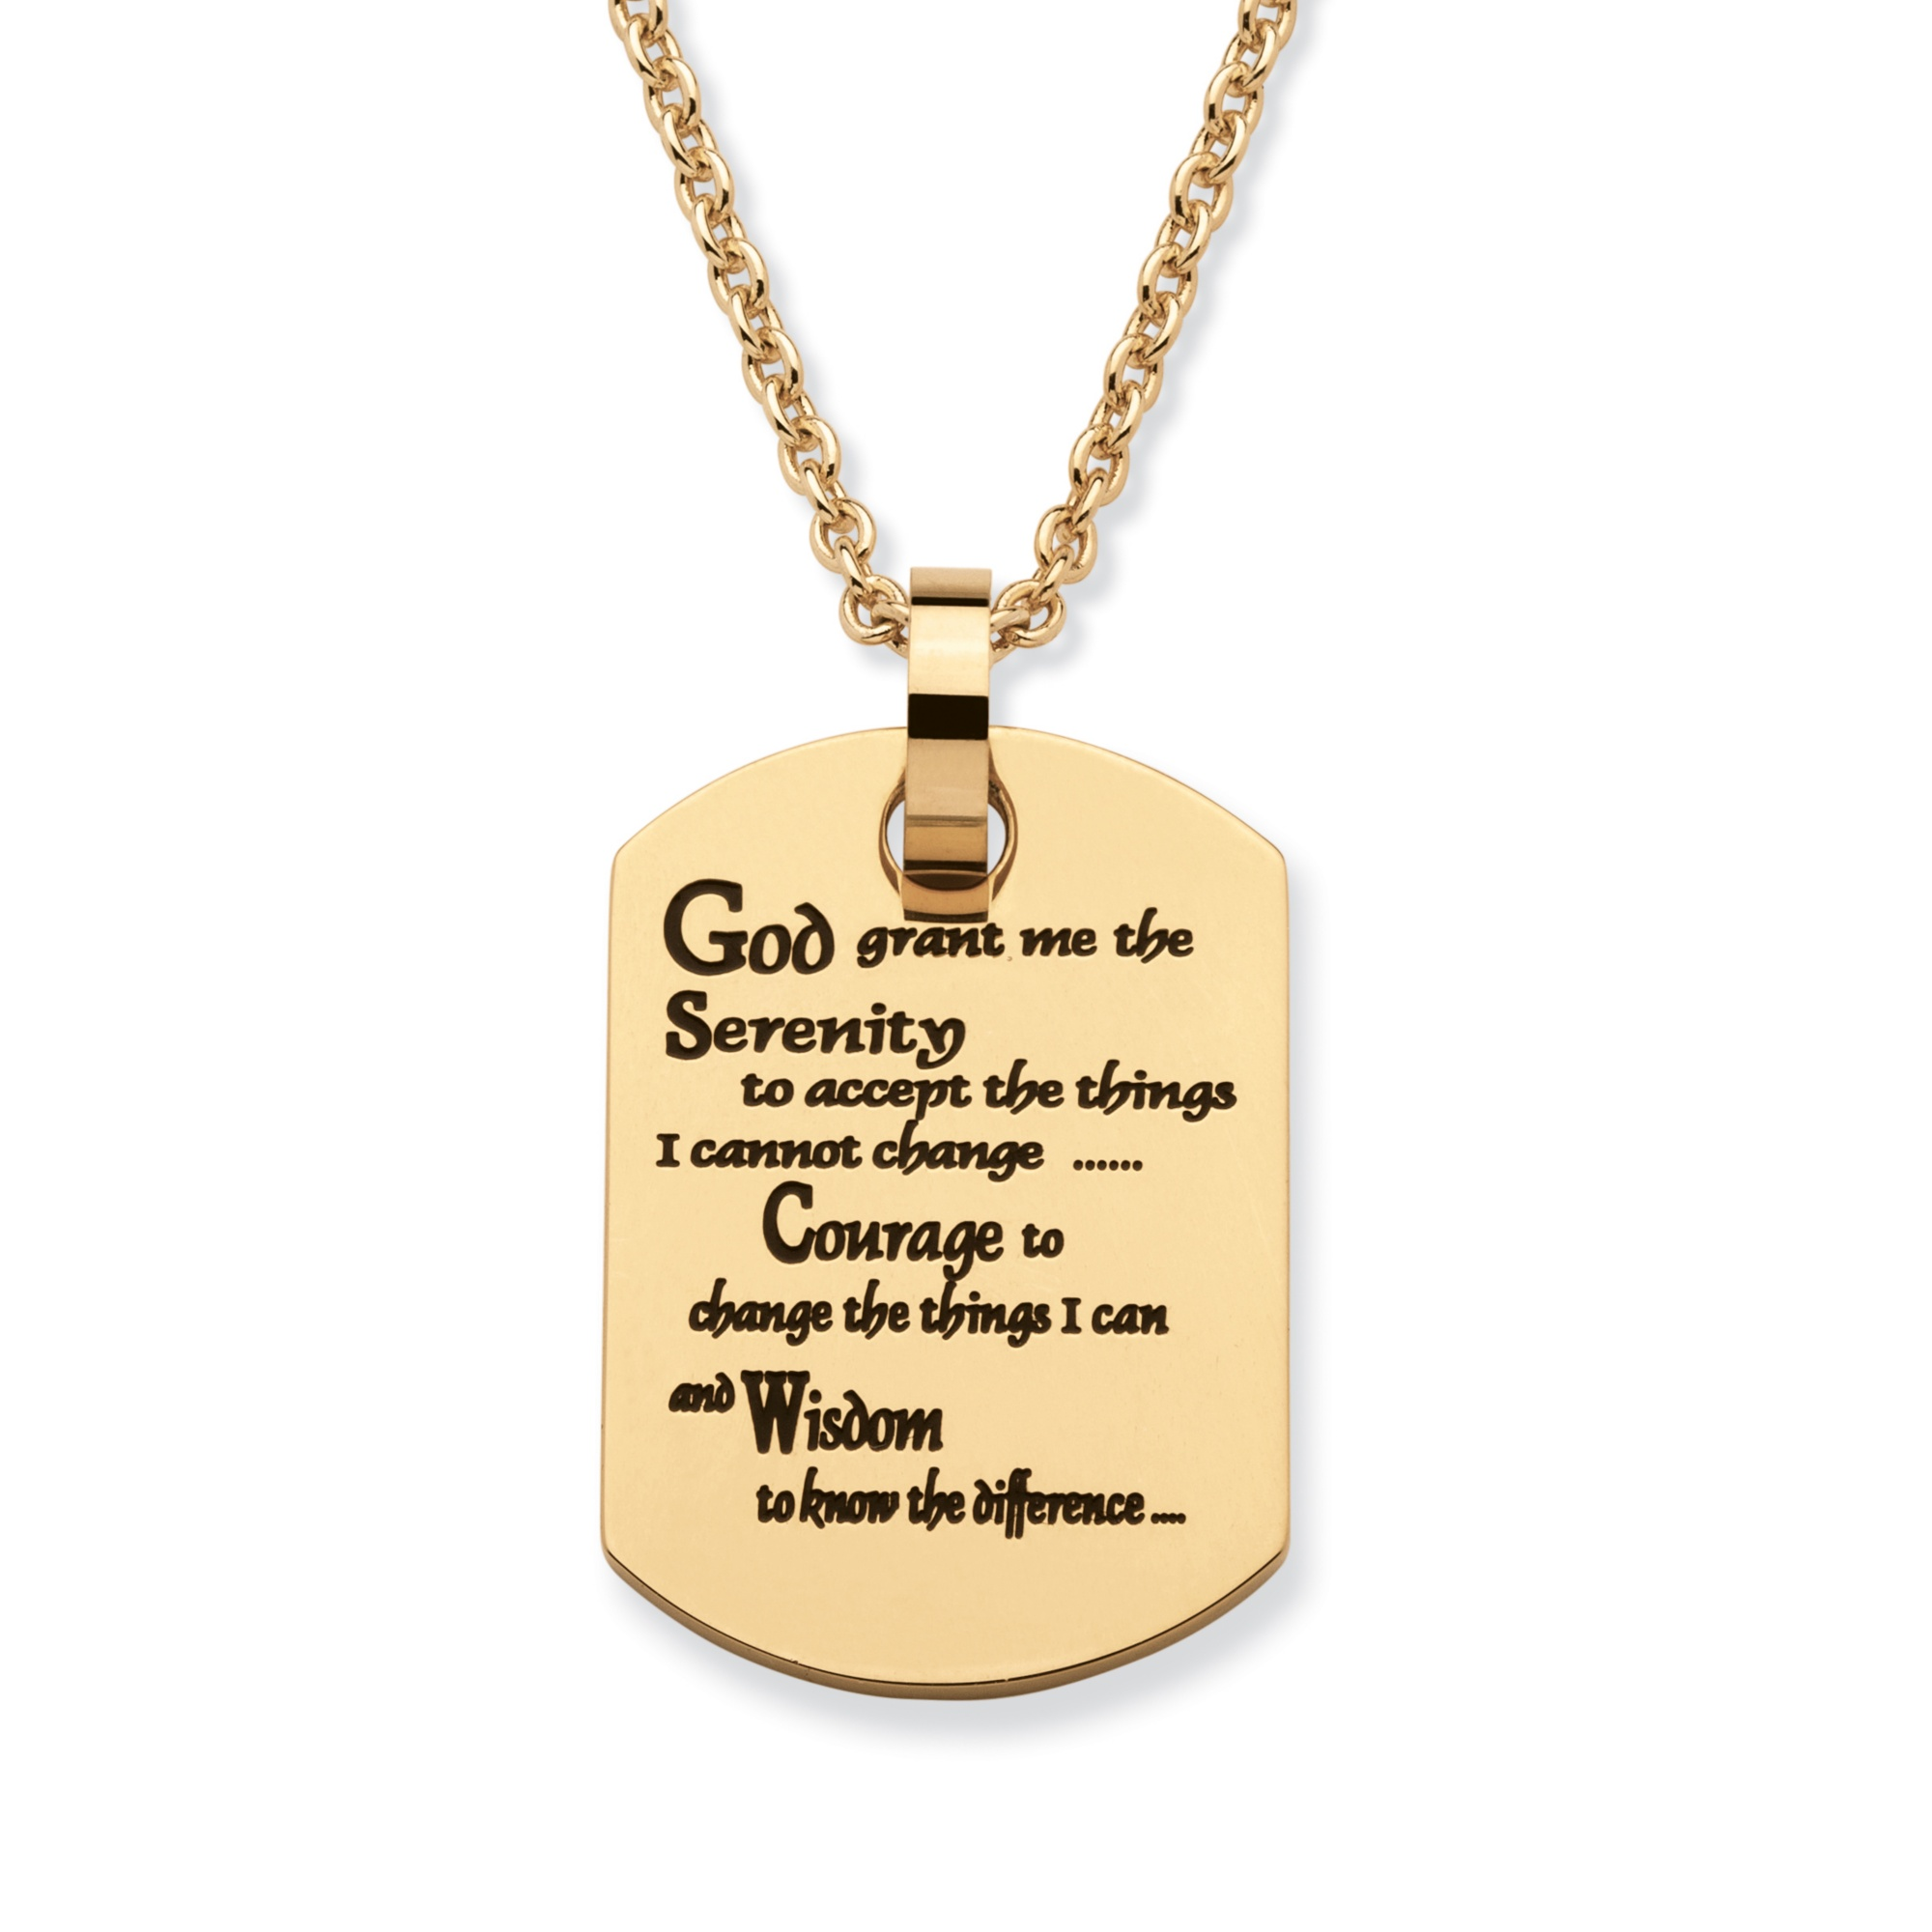 """PalmBeach Jewelry """"Serenity Prayer"""" Dog Tag Pendant Necklace in Gold Ion-Plated Stainless Steel 20"""" PartNumber: 00401115000P KsnValue: 9625478 MfgPartNumber: 56807"""